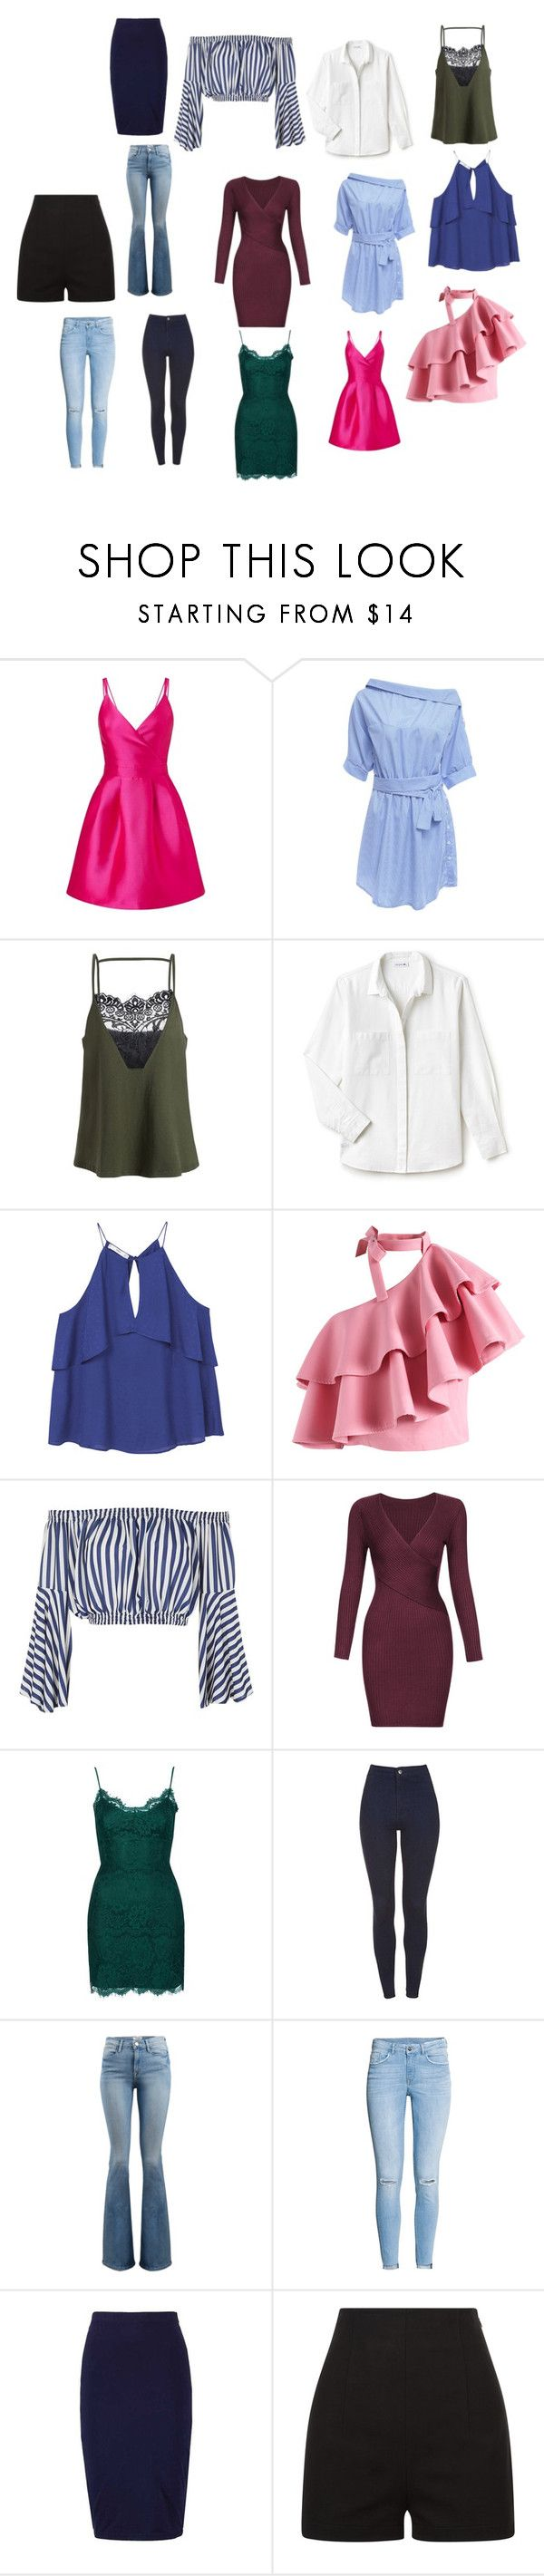 """""""hourglass clothes"""" by valeriagban on Polyvore featuring Miss Selfridge, Lacoste, MANGO, Chicwish, Love, Topshop, Frame and H&M"""